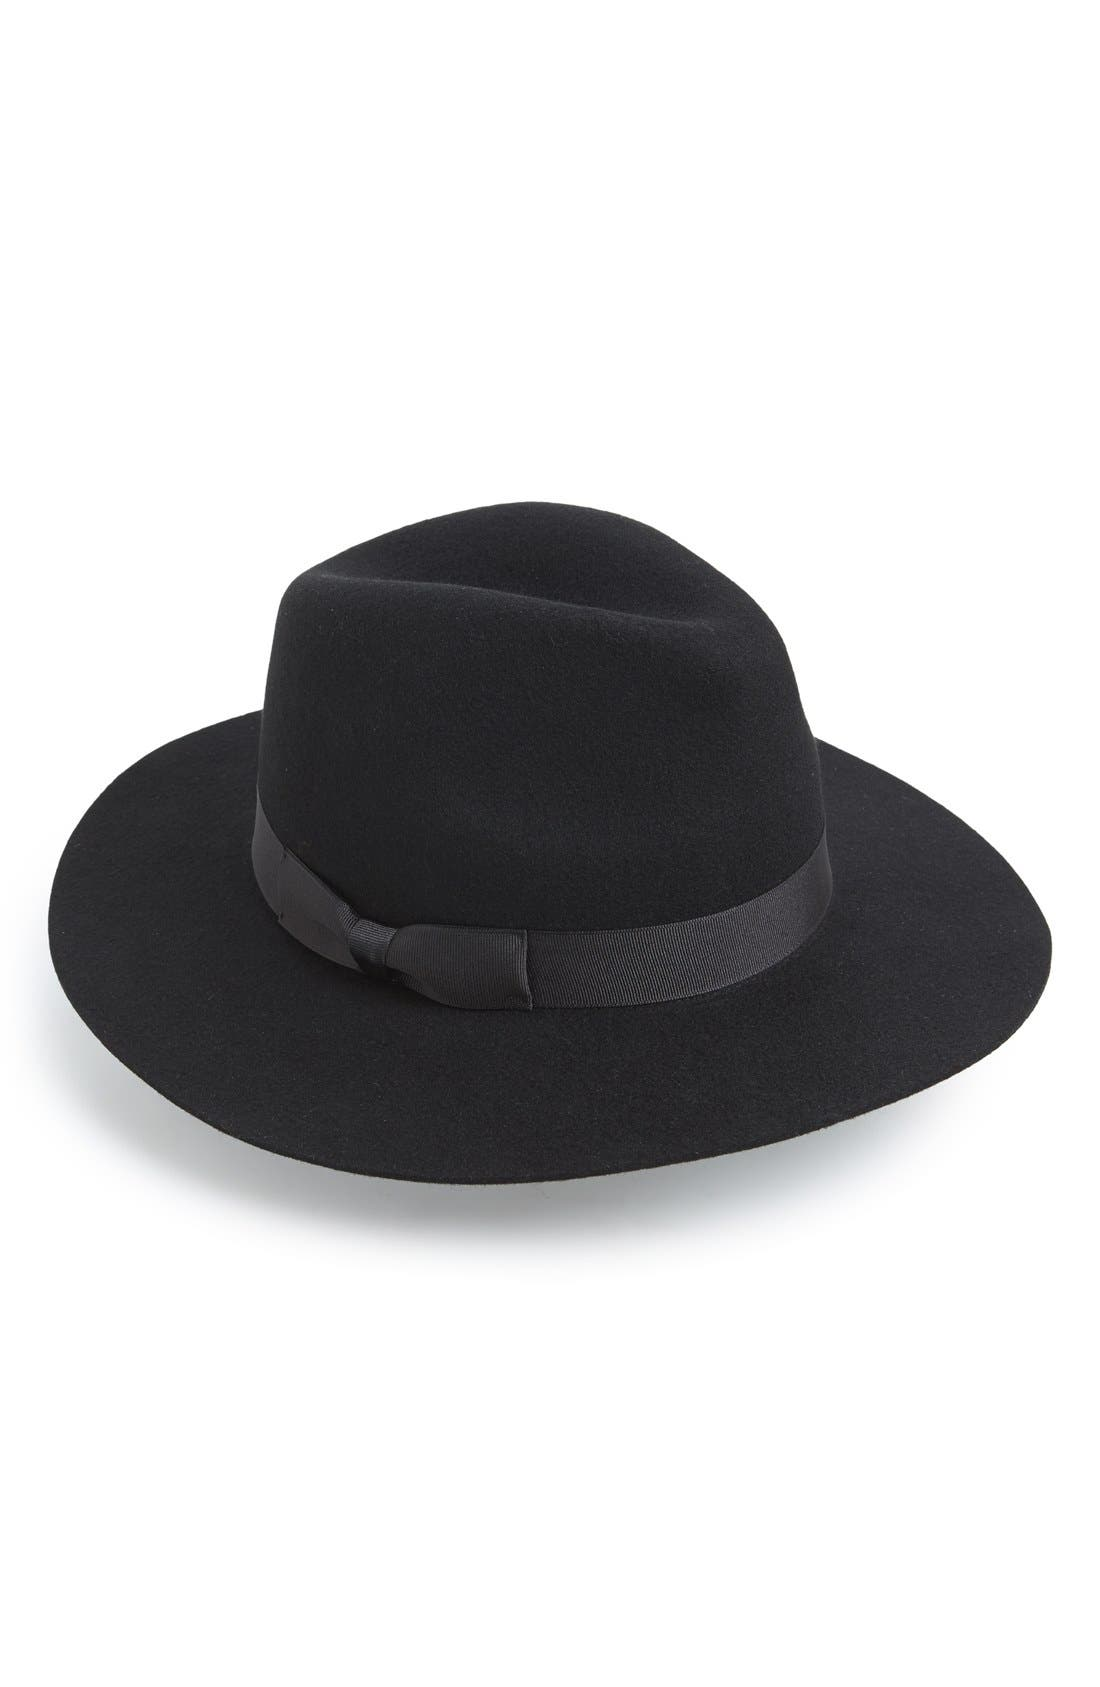 'The Midnight Muse II' Felt Fedora,                         Main,                         color, Black With Black Ribbon